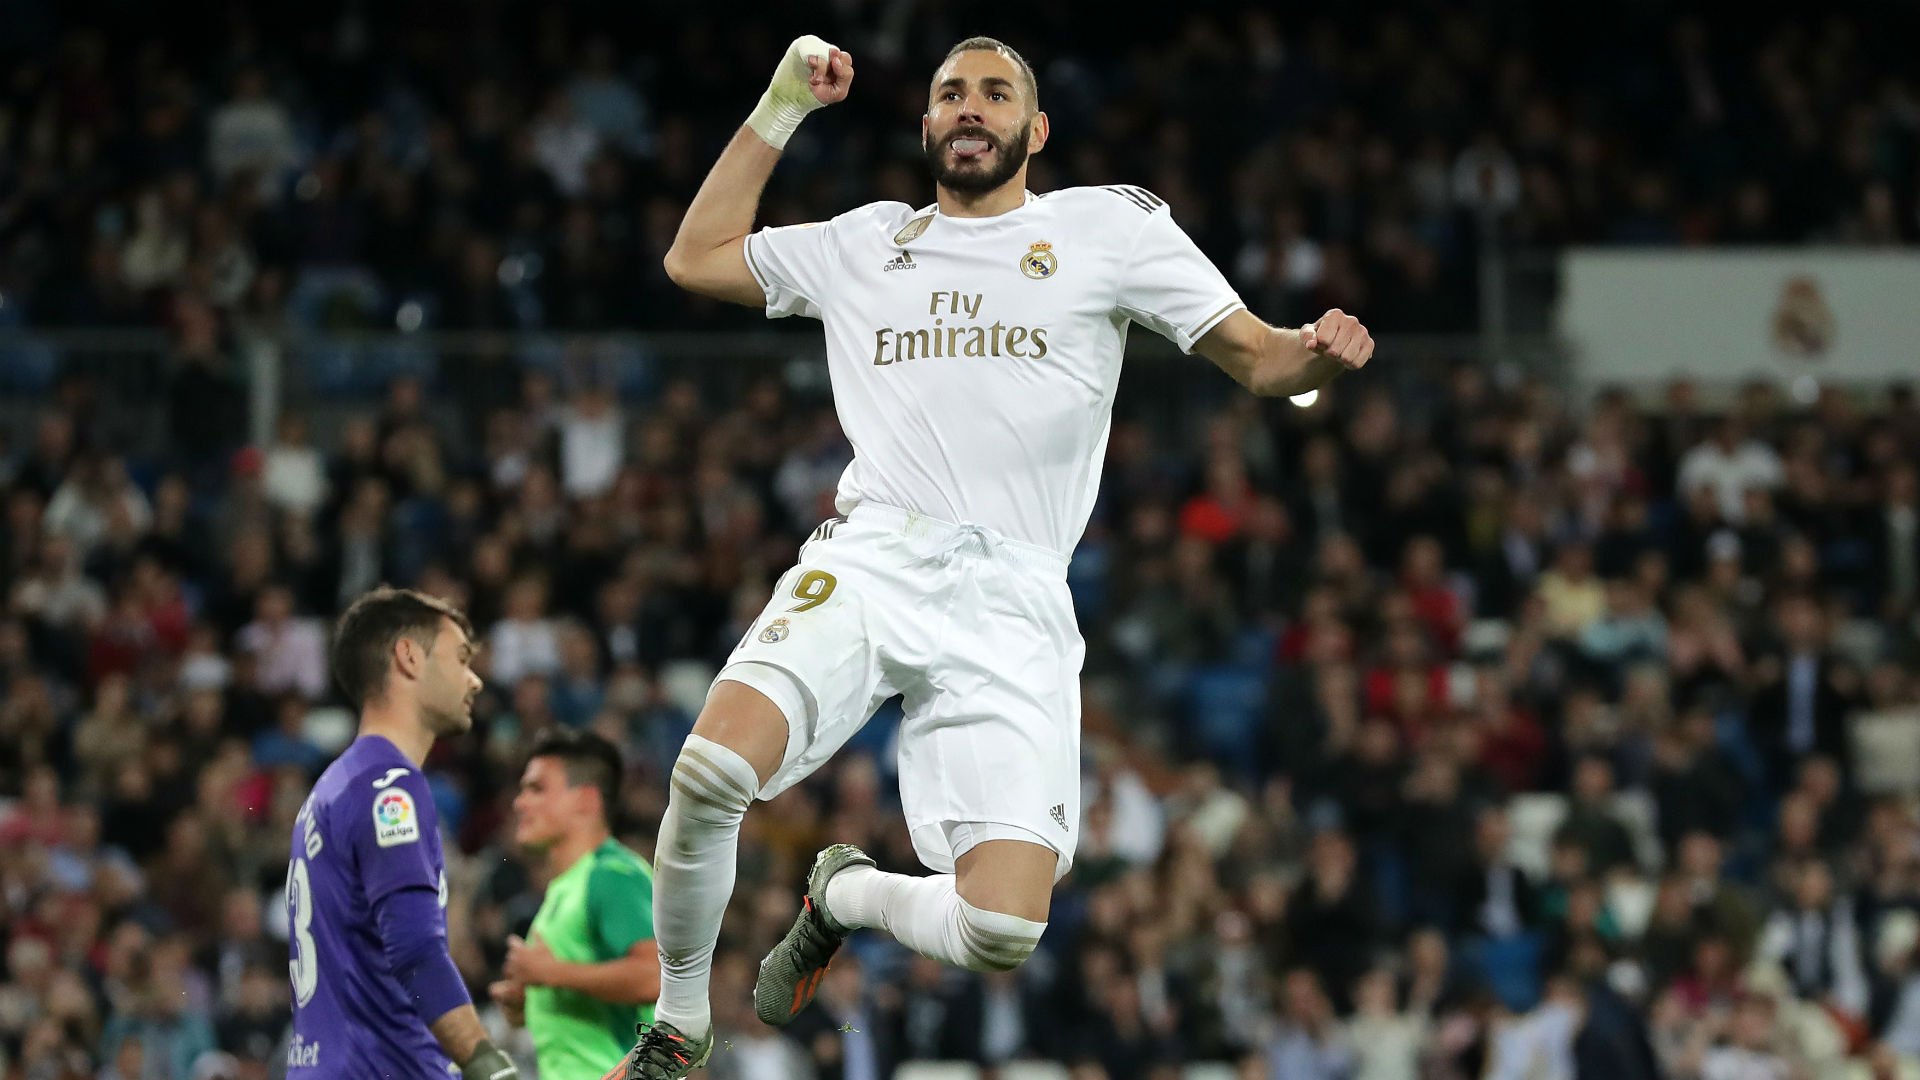 Much more to Benzema than just goals – Zidane